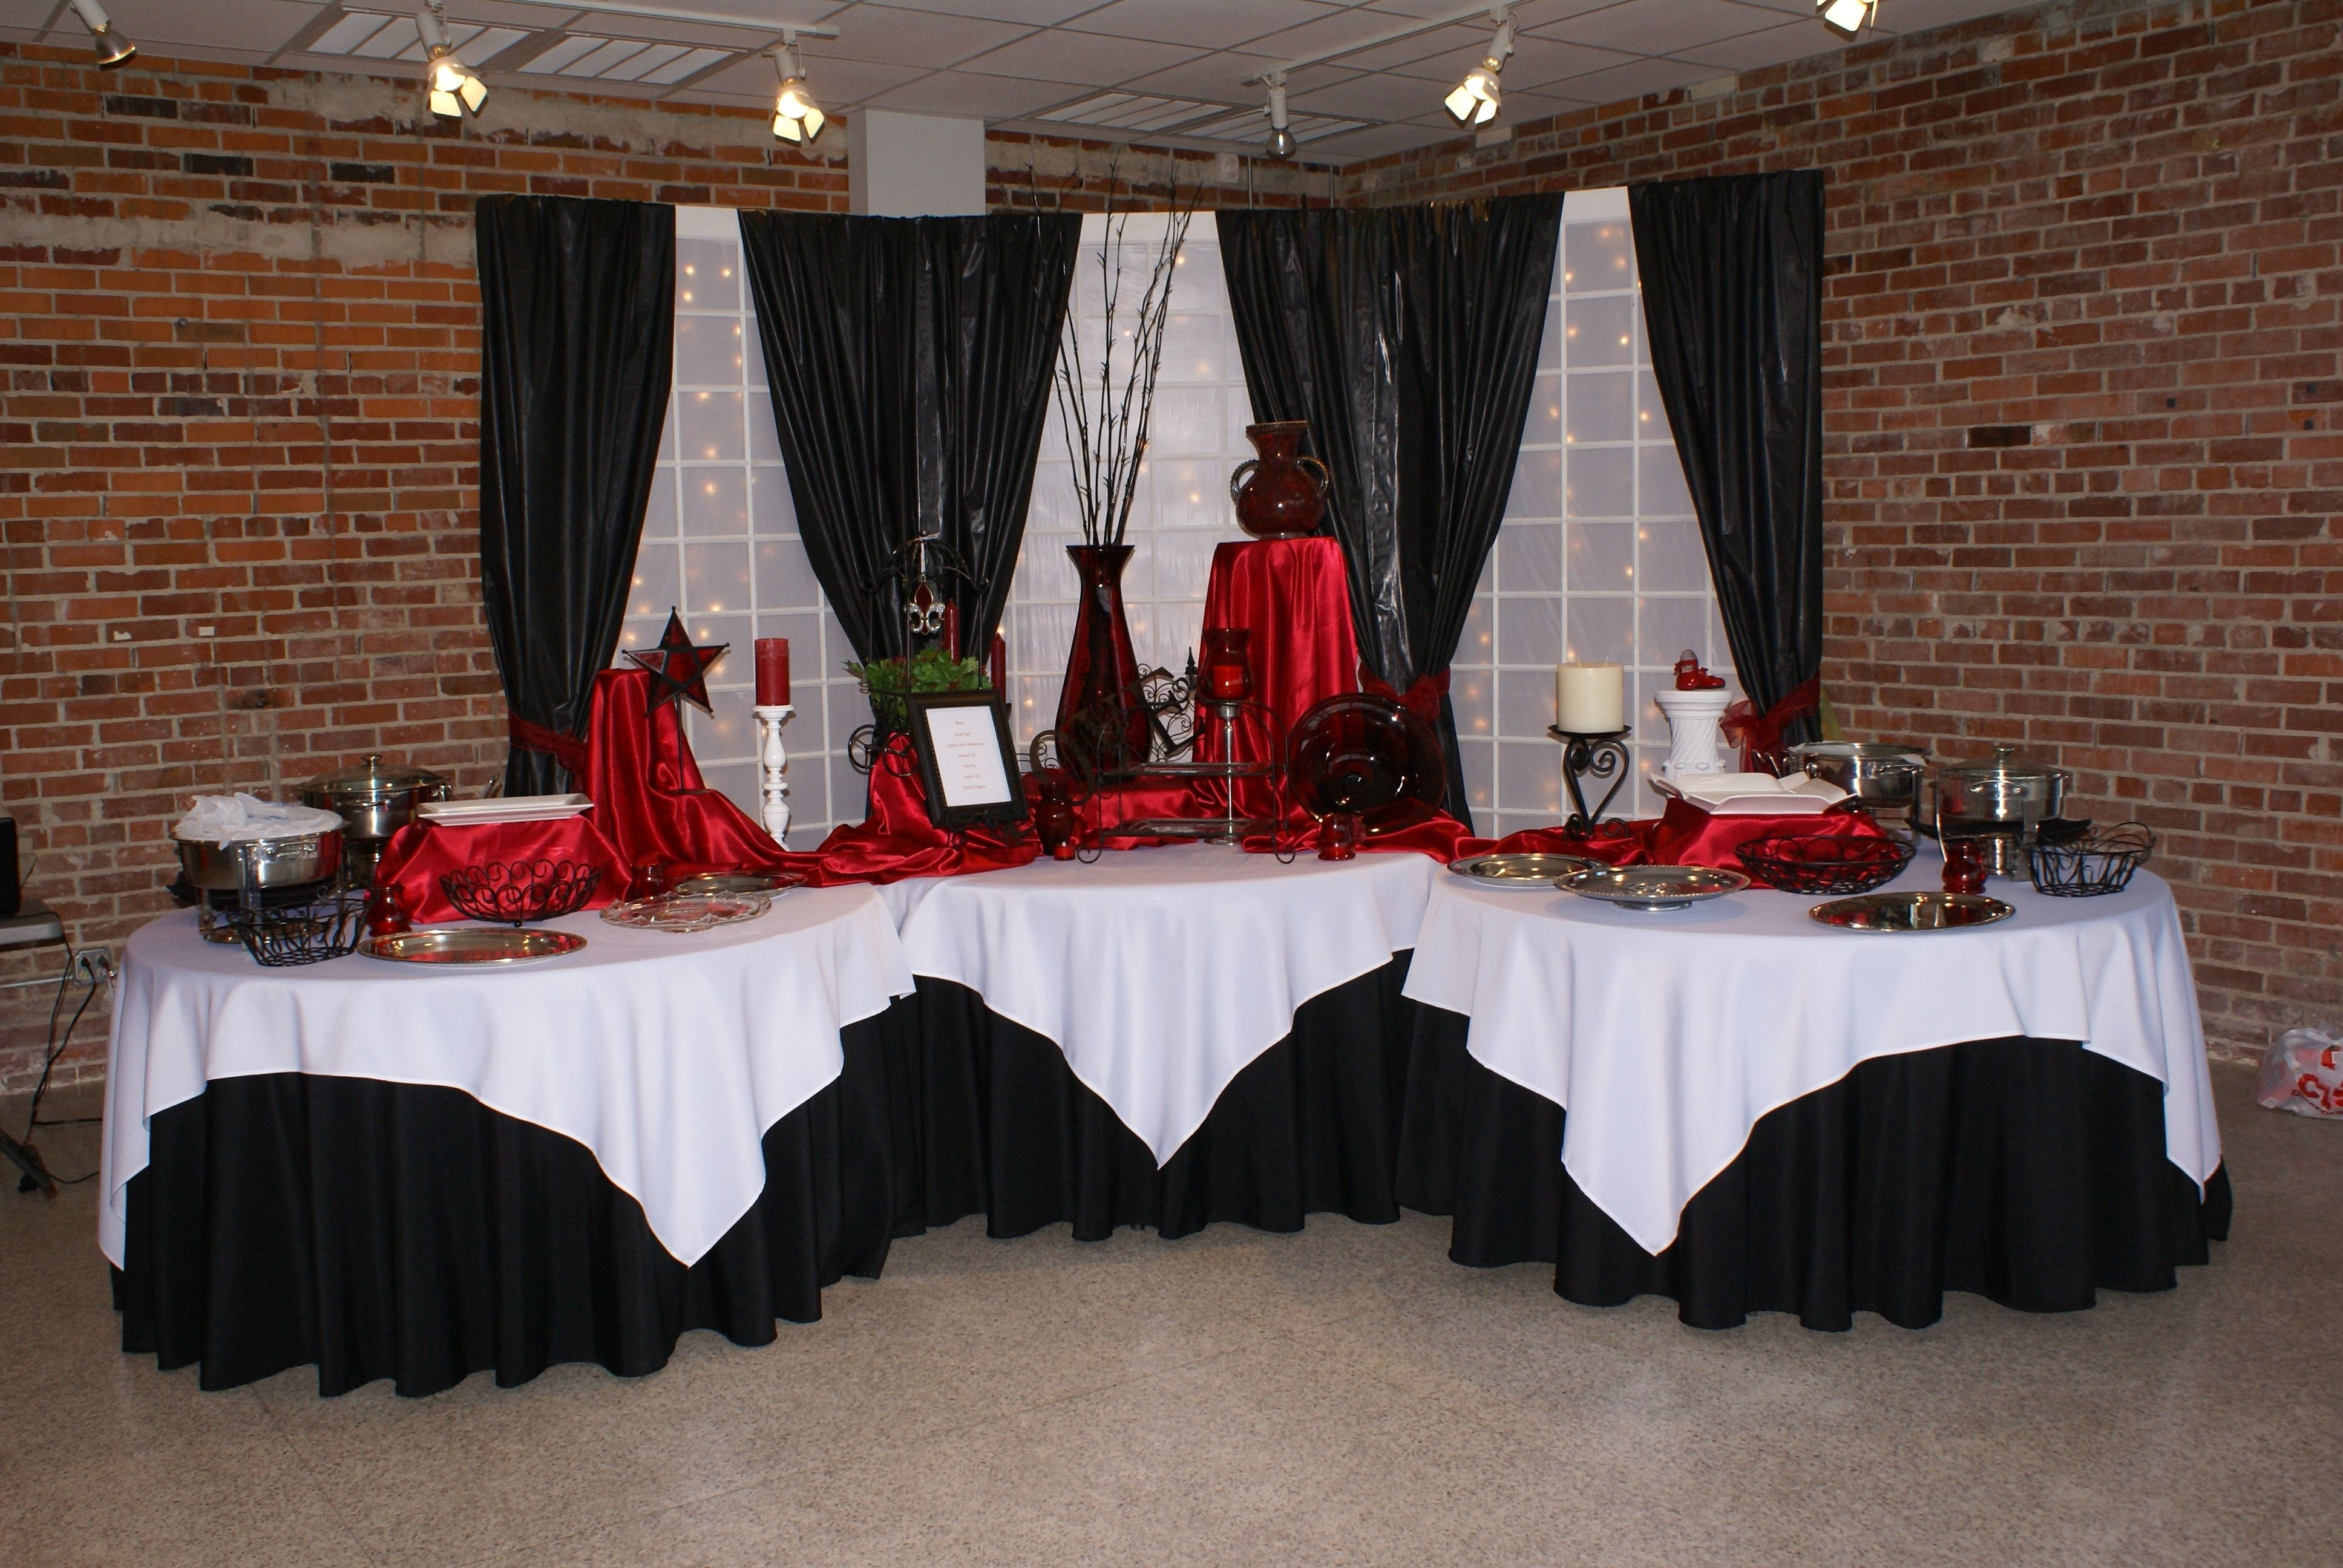 10 Attractive Red And Black Wedding Ideas black and red wedding decorations ideaste silver cake magnificent 1 2021